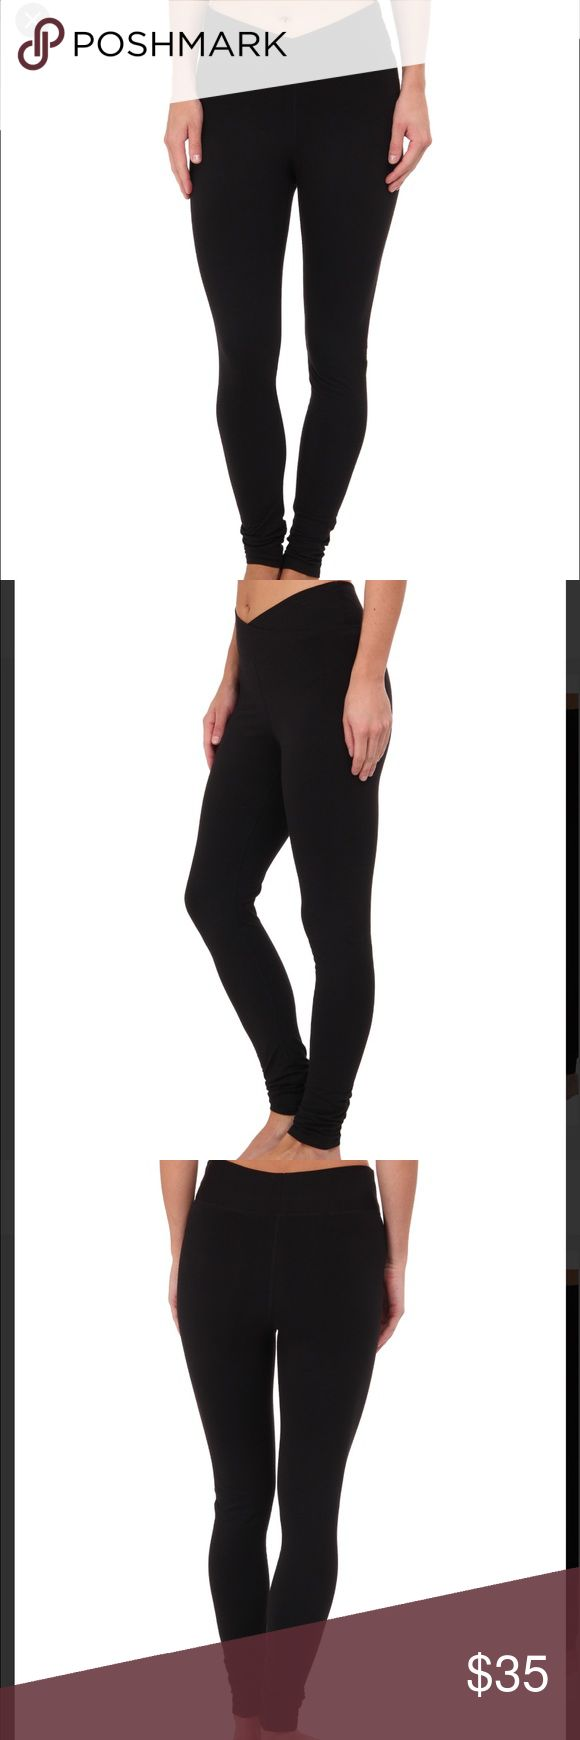 Yummie NAVY Hannah leggings Pics show black leggings on model but this will be in a NAVY COLOR. In excellent condition. Any wear is minimal. No flaws. A pant for all your active endeavors in and out of the gym. 360° of control keeps you slim, smooth, and comfortable all day long. Flattering V-shaped waistband. Mid rise. Comfortable flat-lock seams. 86% cotton, 14% Lycra® spandex. Yummie by Heather Thomson Pants Leggings